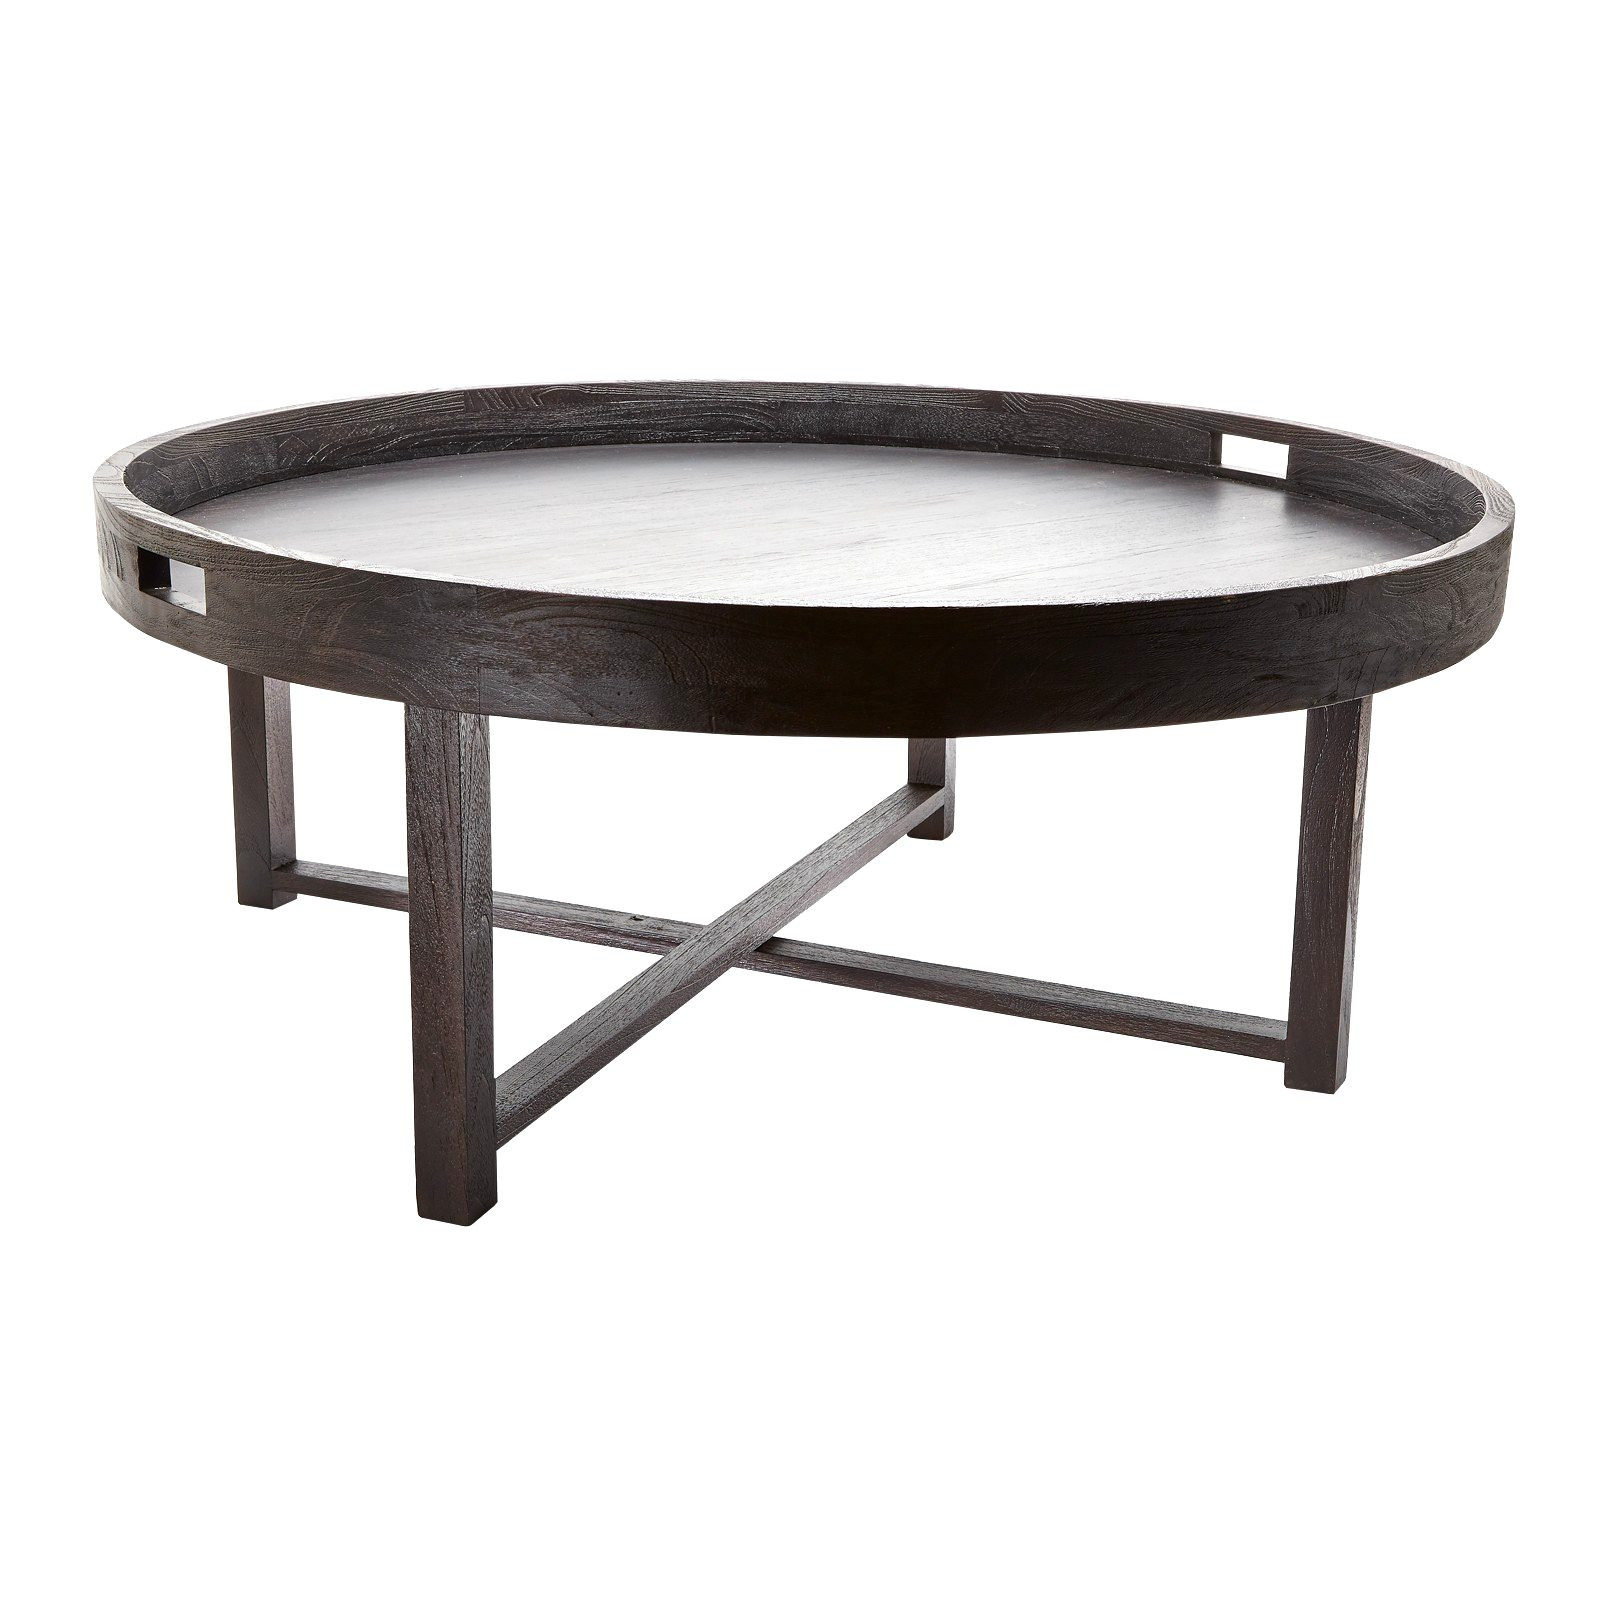 aluminum outdoor side table lovely loop drum patio tables modern dadisinthehouse ideas metal accent black nate berkus target ott chair square wood round coffee bathtub yellow